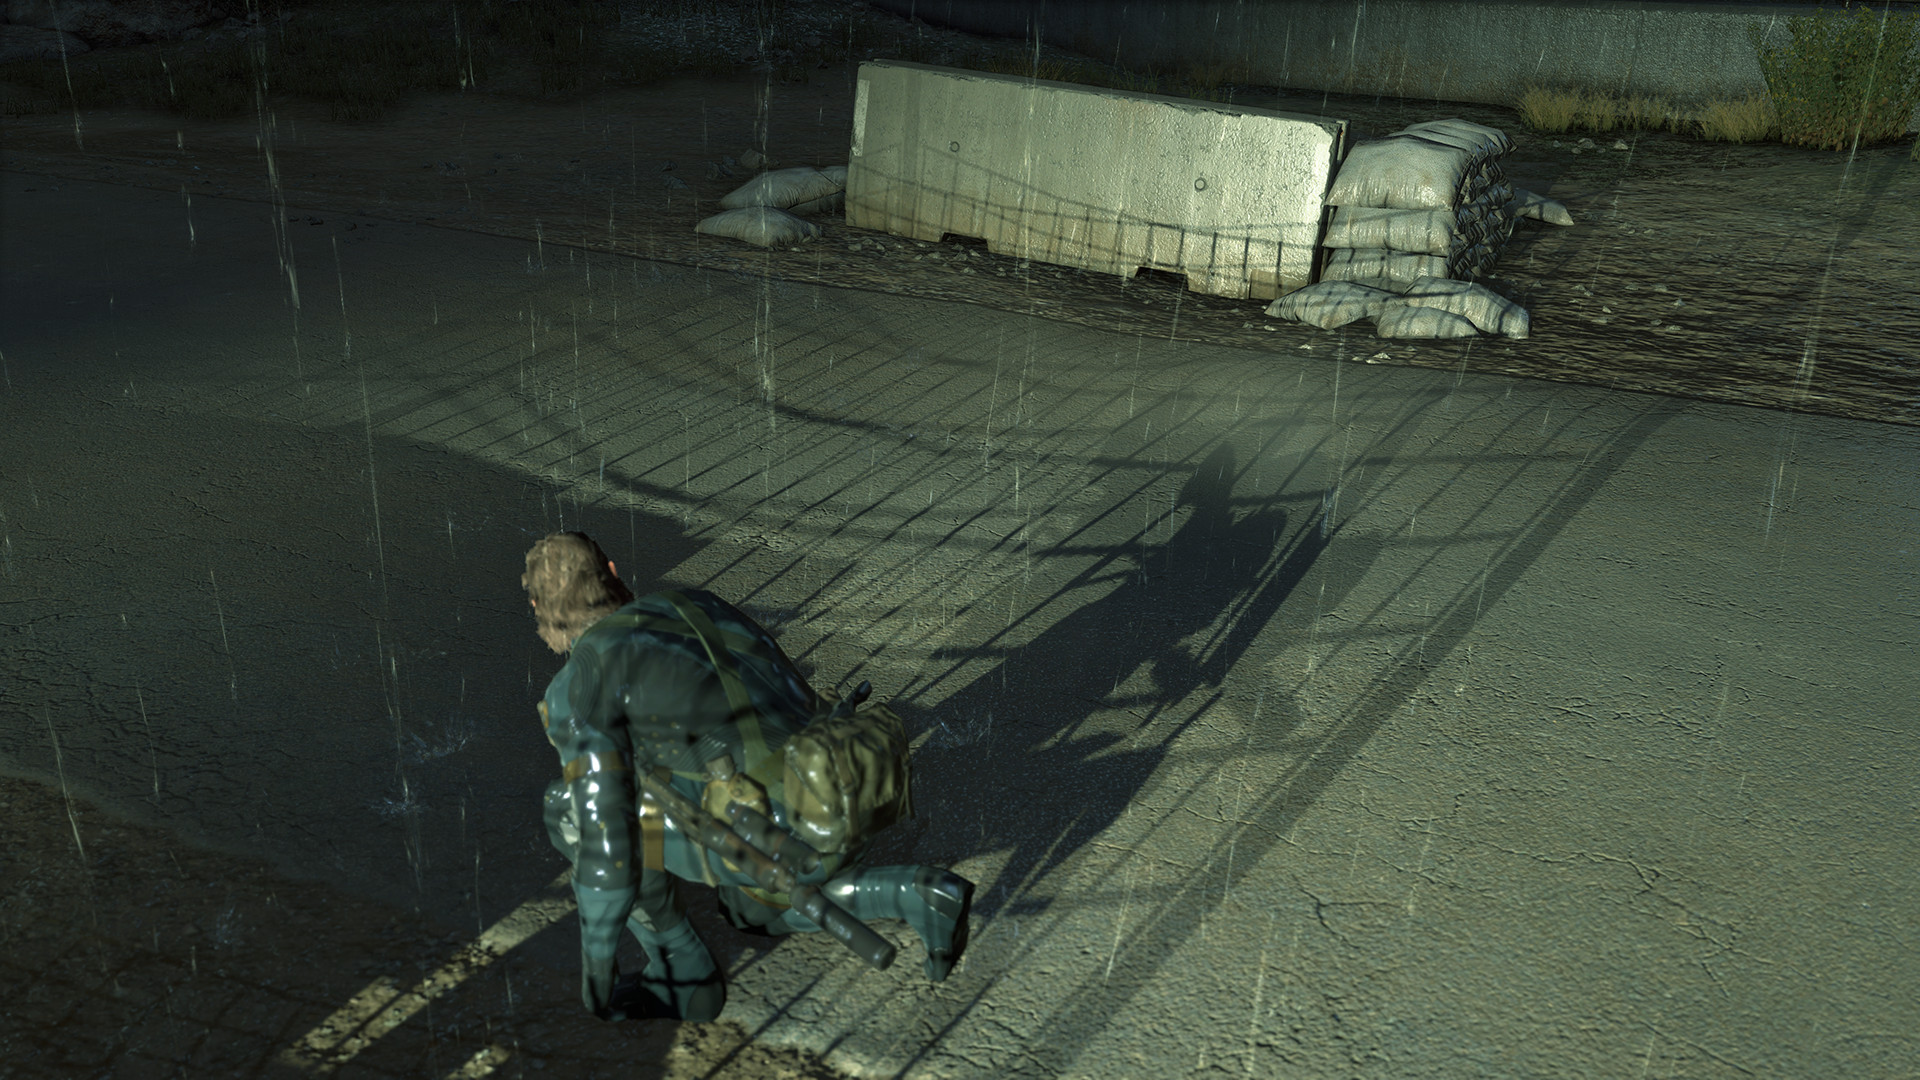 23Metal Gear Solid 5 Ground Zeroes Schatten hoch-pcgh